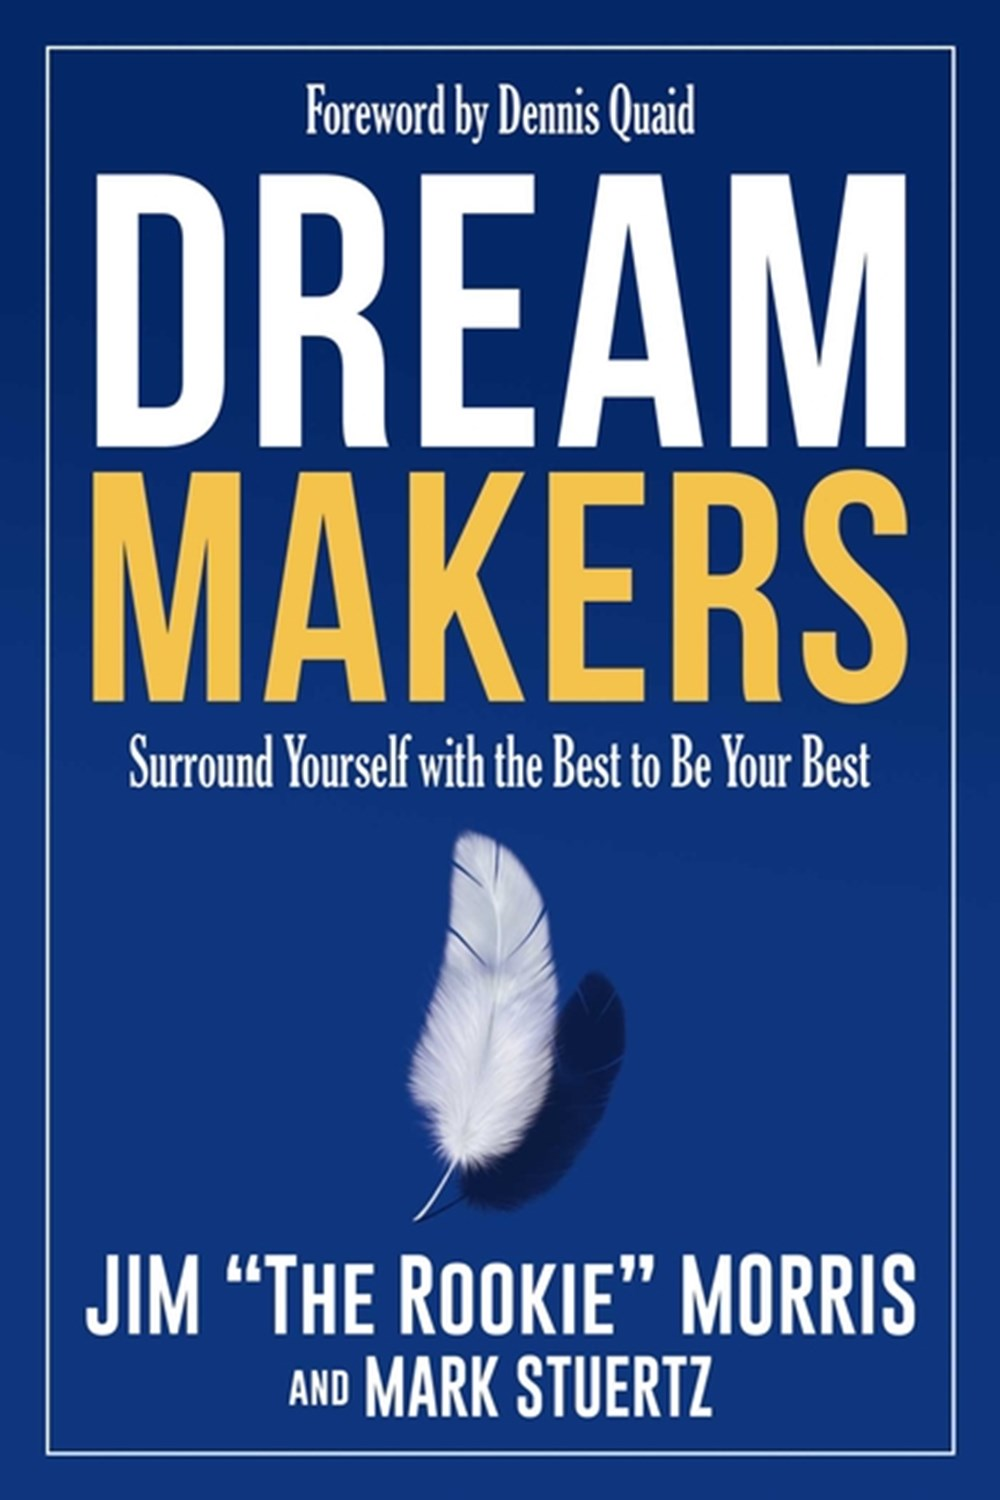 Dream Makers Surround Yourself with the Best to Be Your Best